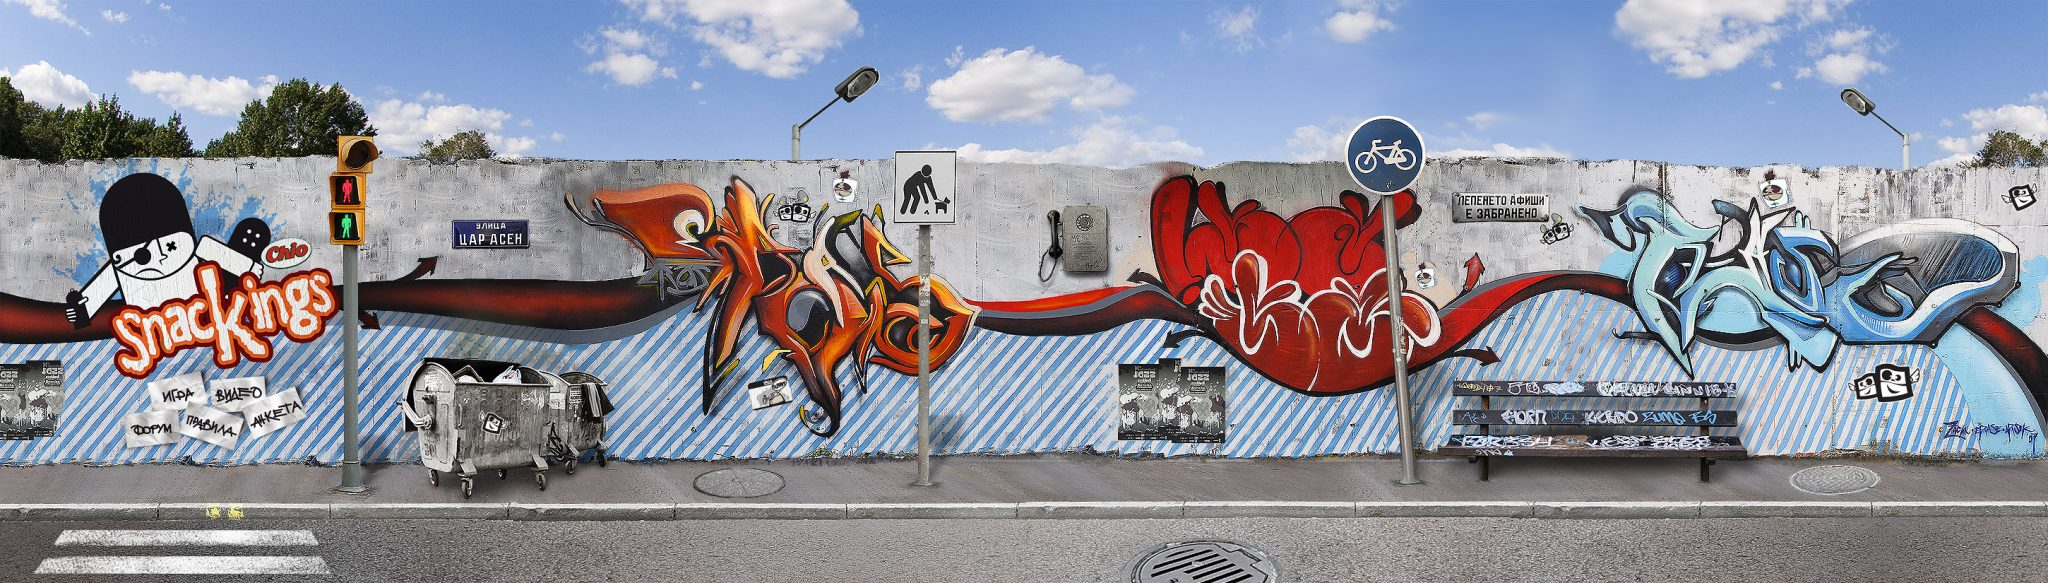 Graffiti-Background-Wall-Street-Art-02